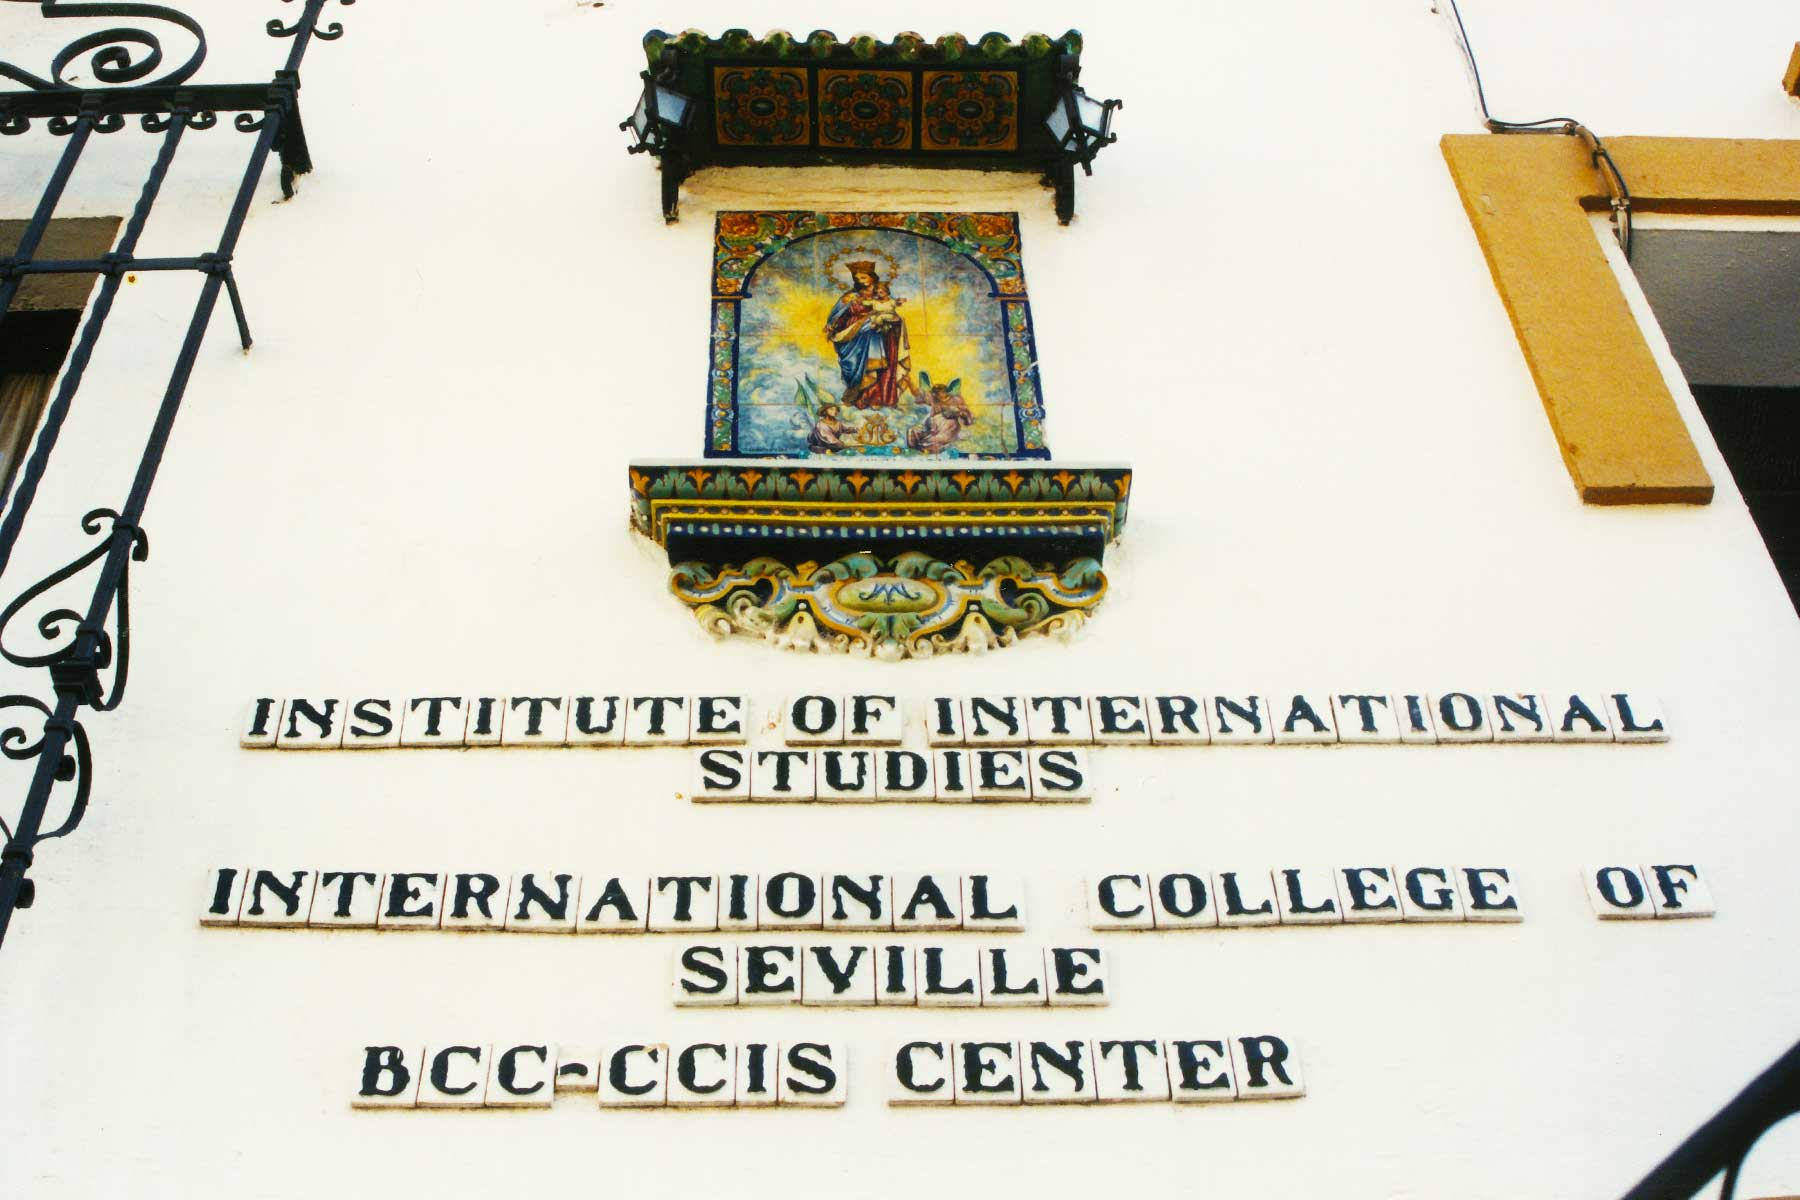 Study Abroad - International College of Seville Spain - College Consortium for International Studies (CCIS) Center - Steven Andrew Martin - Photo Journal -